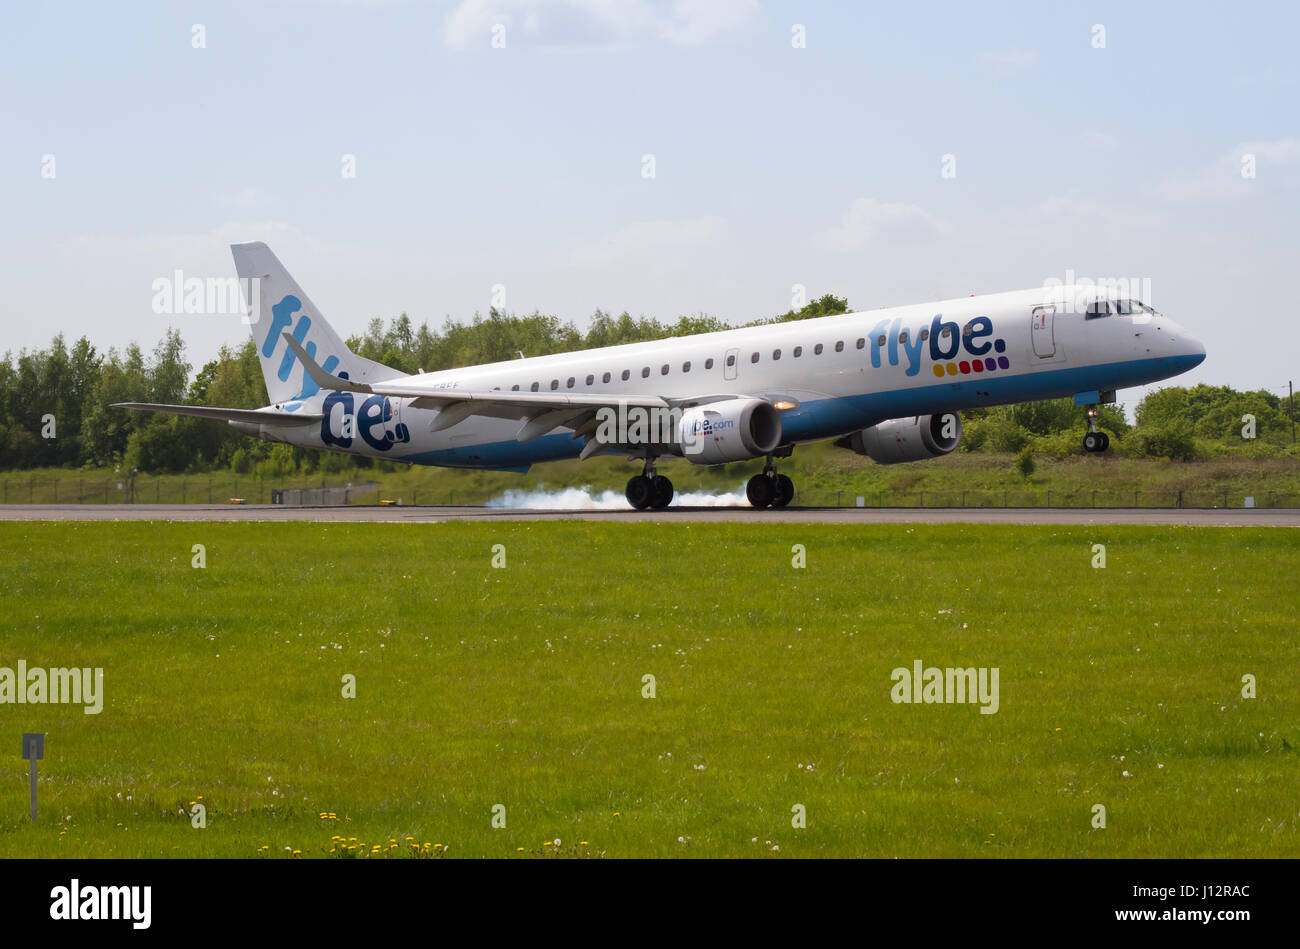 Airplane Flybe G-FBEF Embraer ERJ-195LR Landing at Manchester Airport - Stock Image